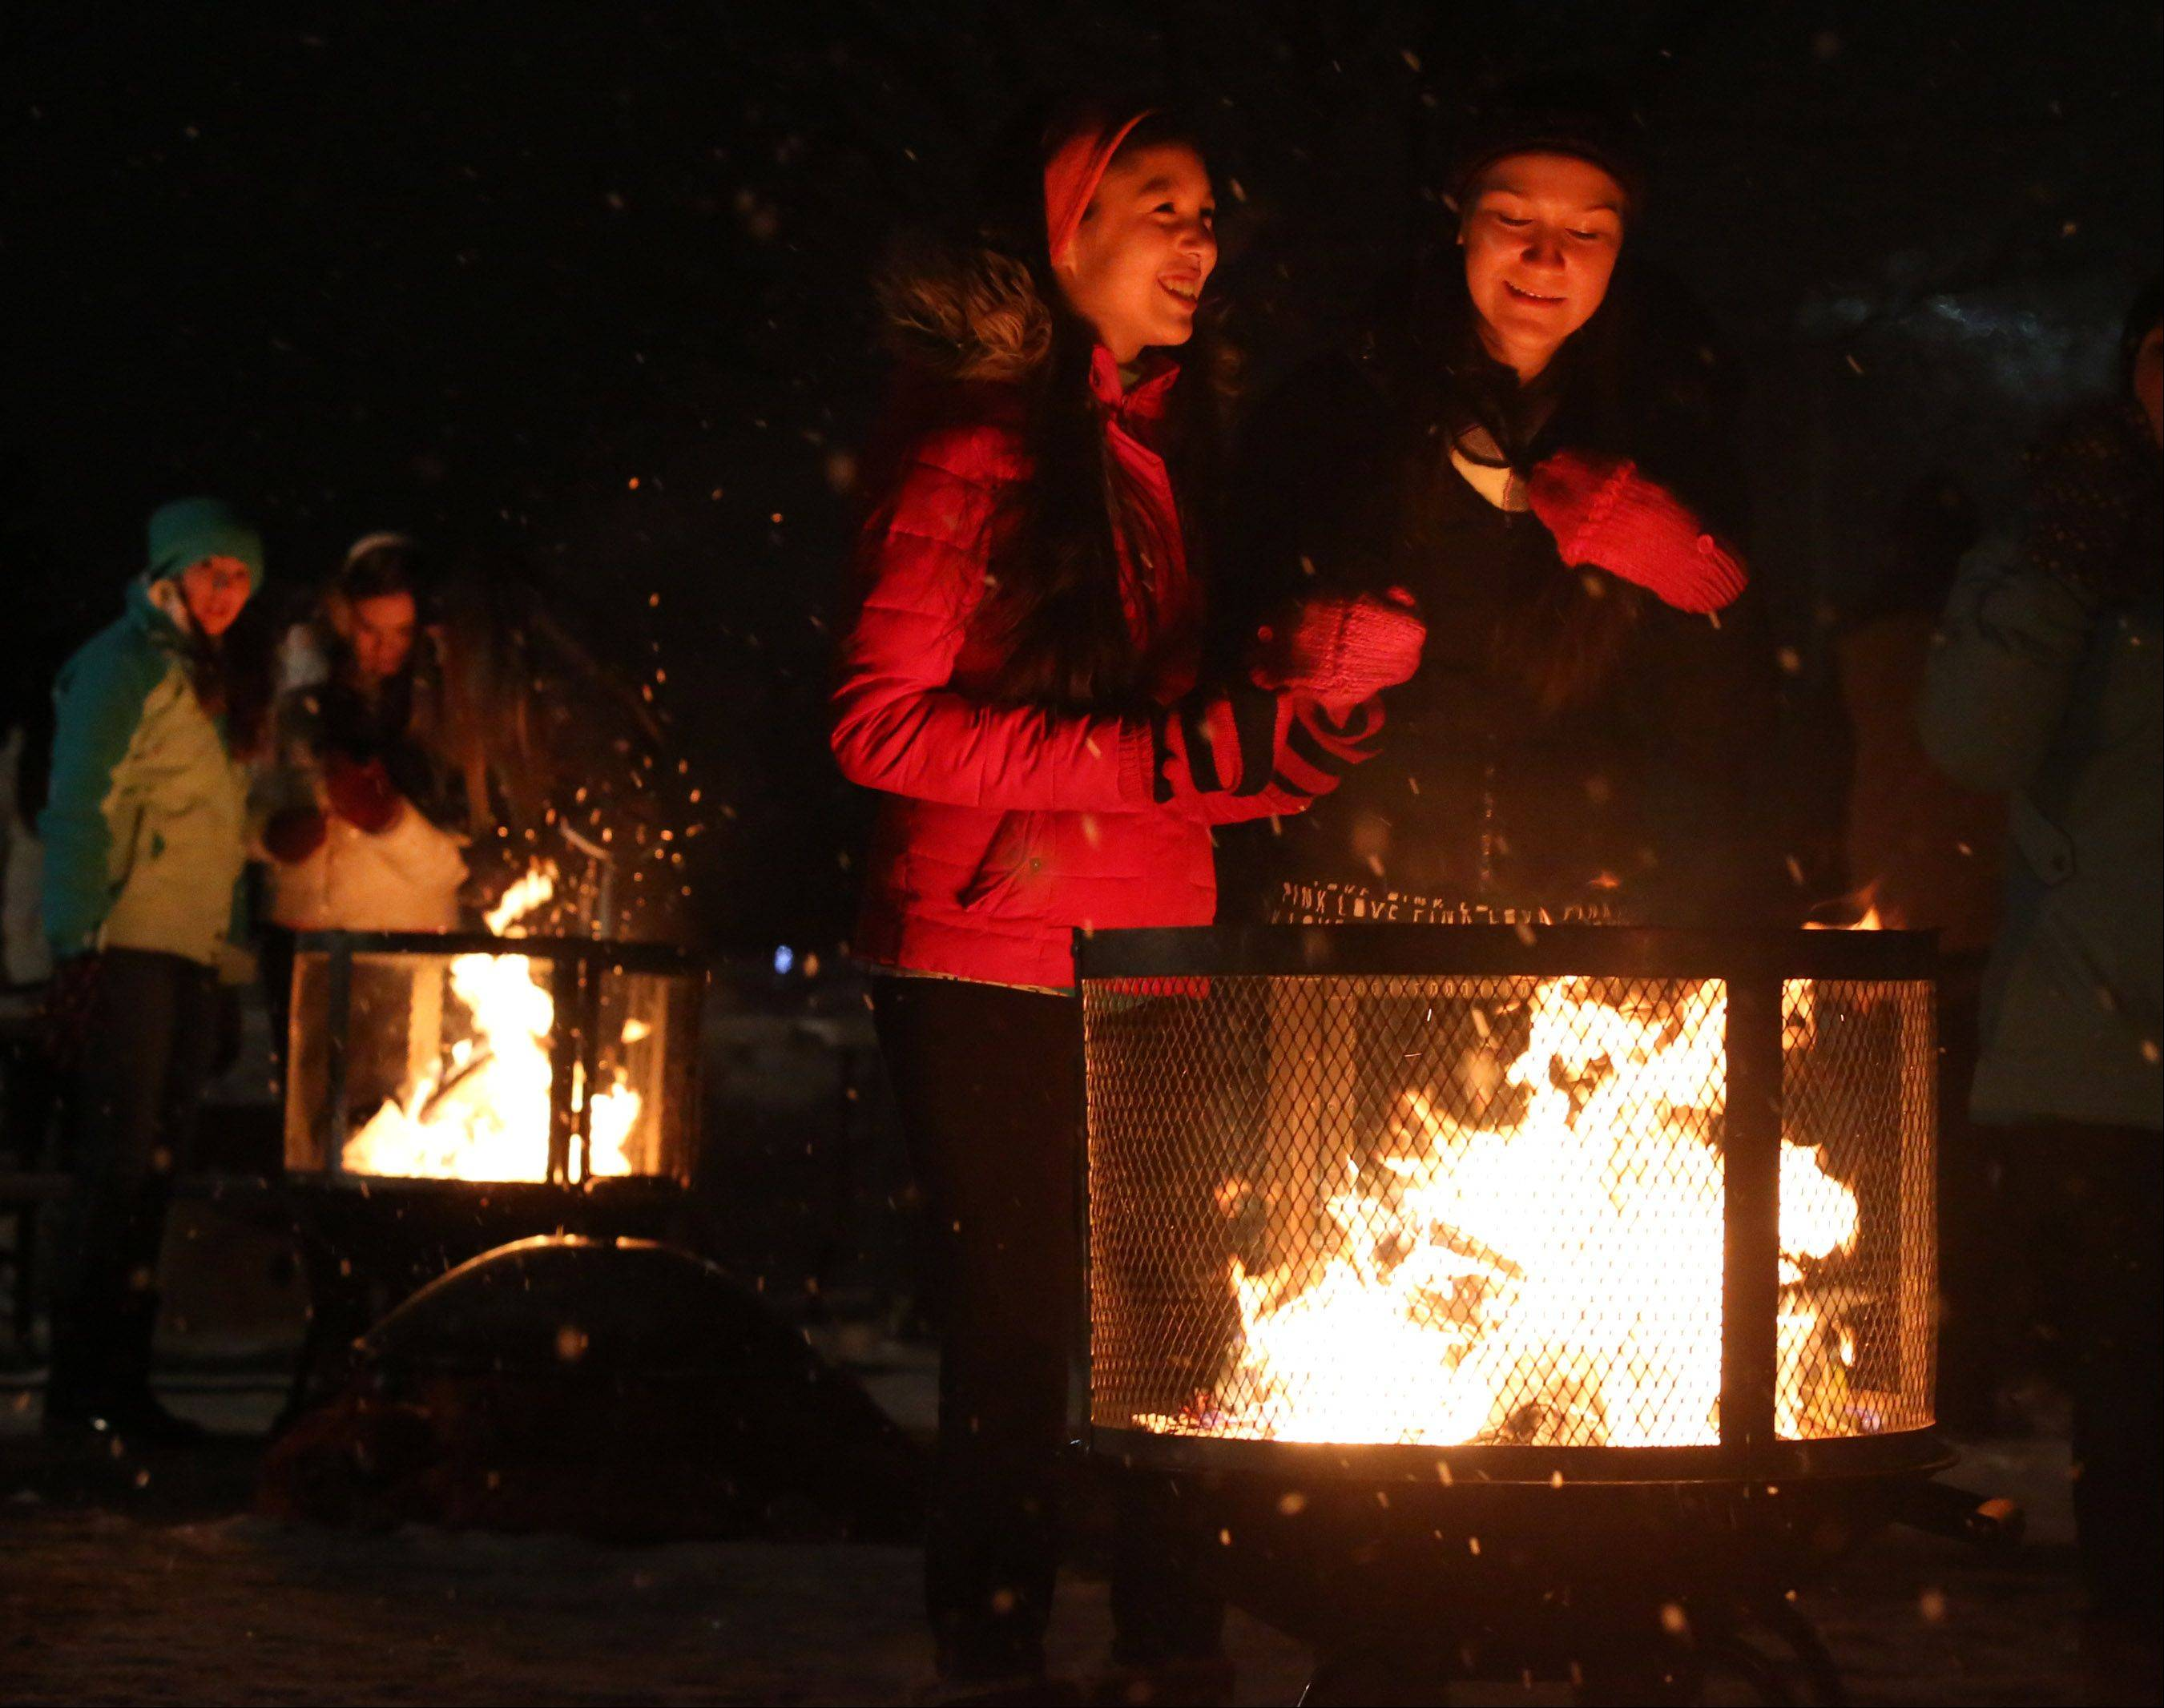 Hannah Hansen and friend Chelsea Tillman, both 14 of Gurnee, keep warm at one of three fire pits at the Frosty Fest on Friday night in Gurnee.